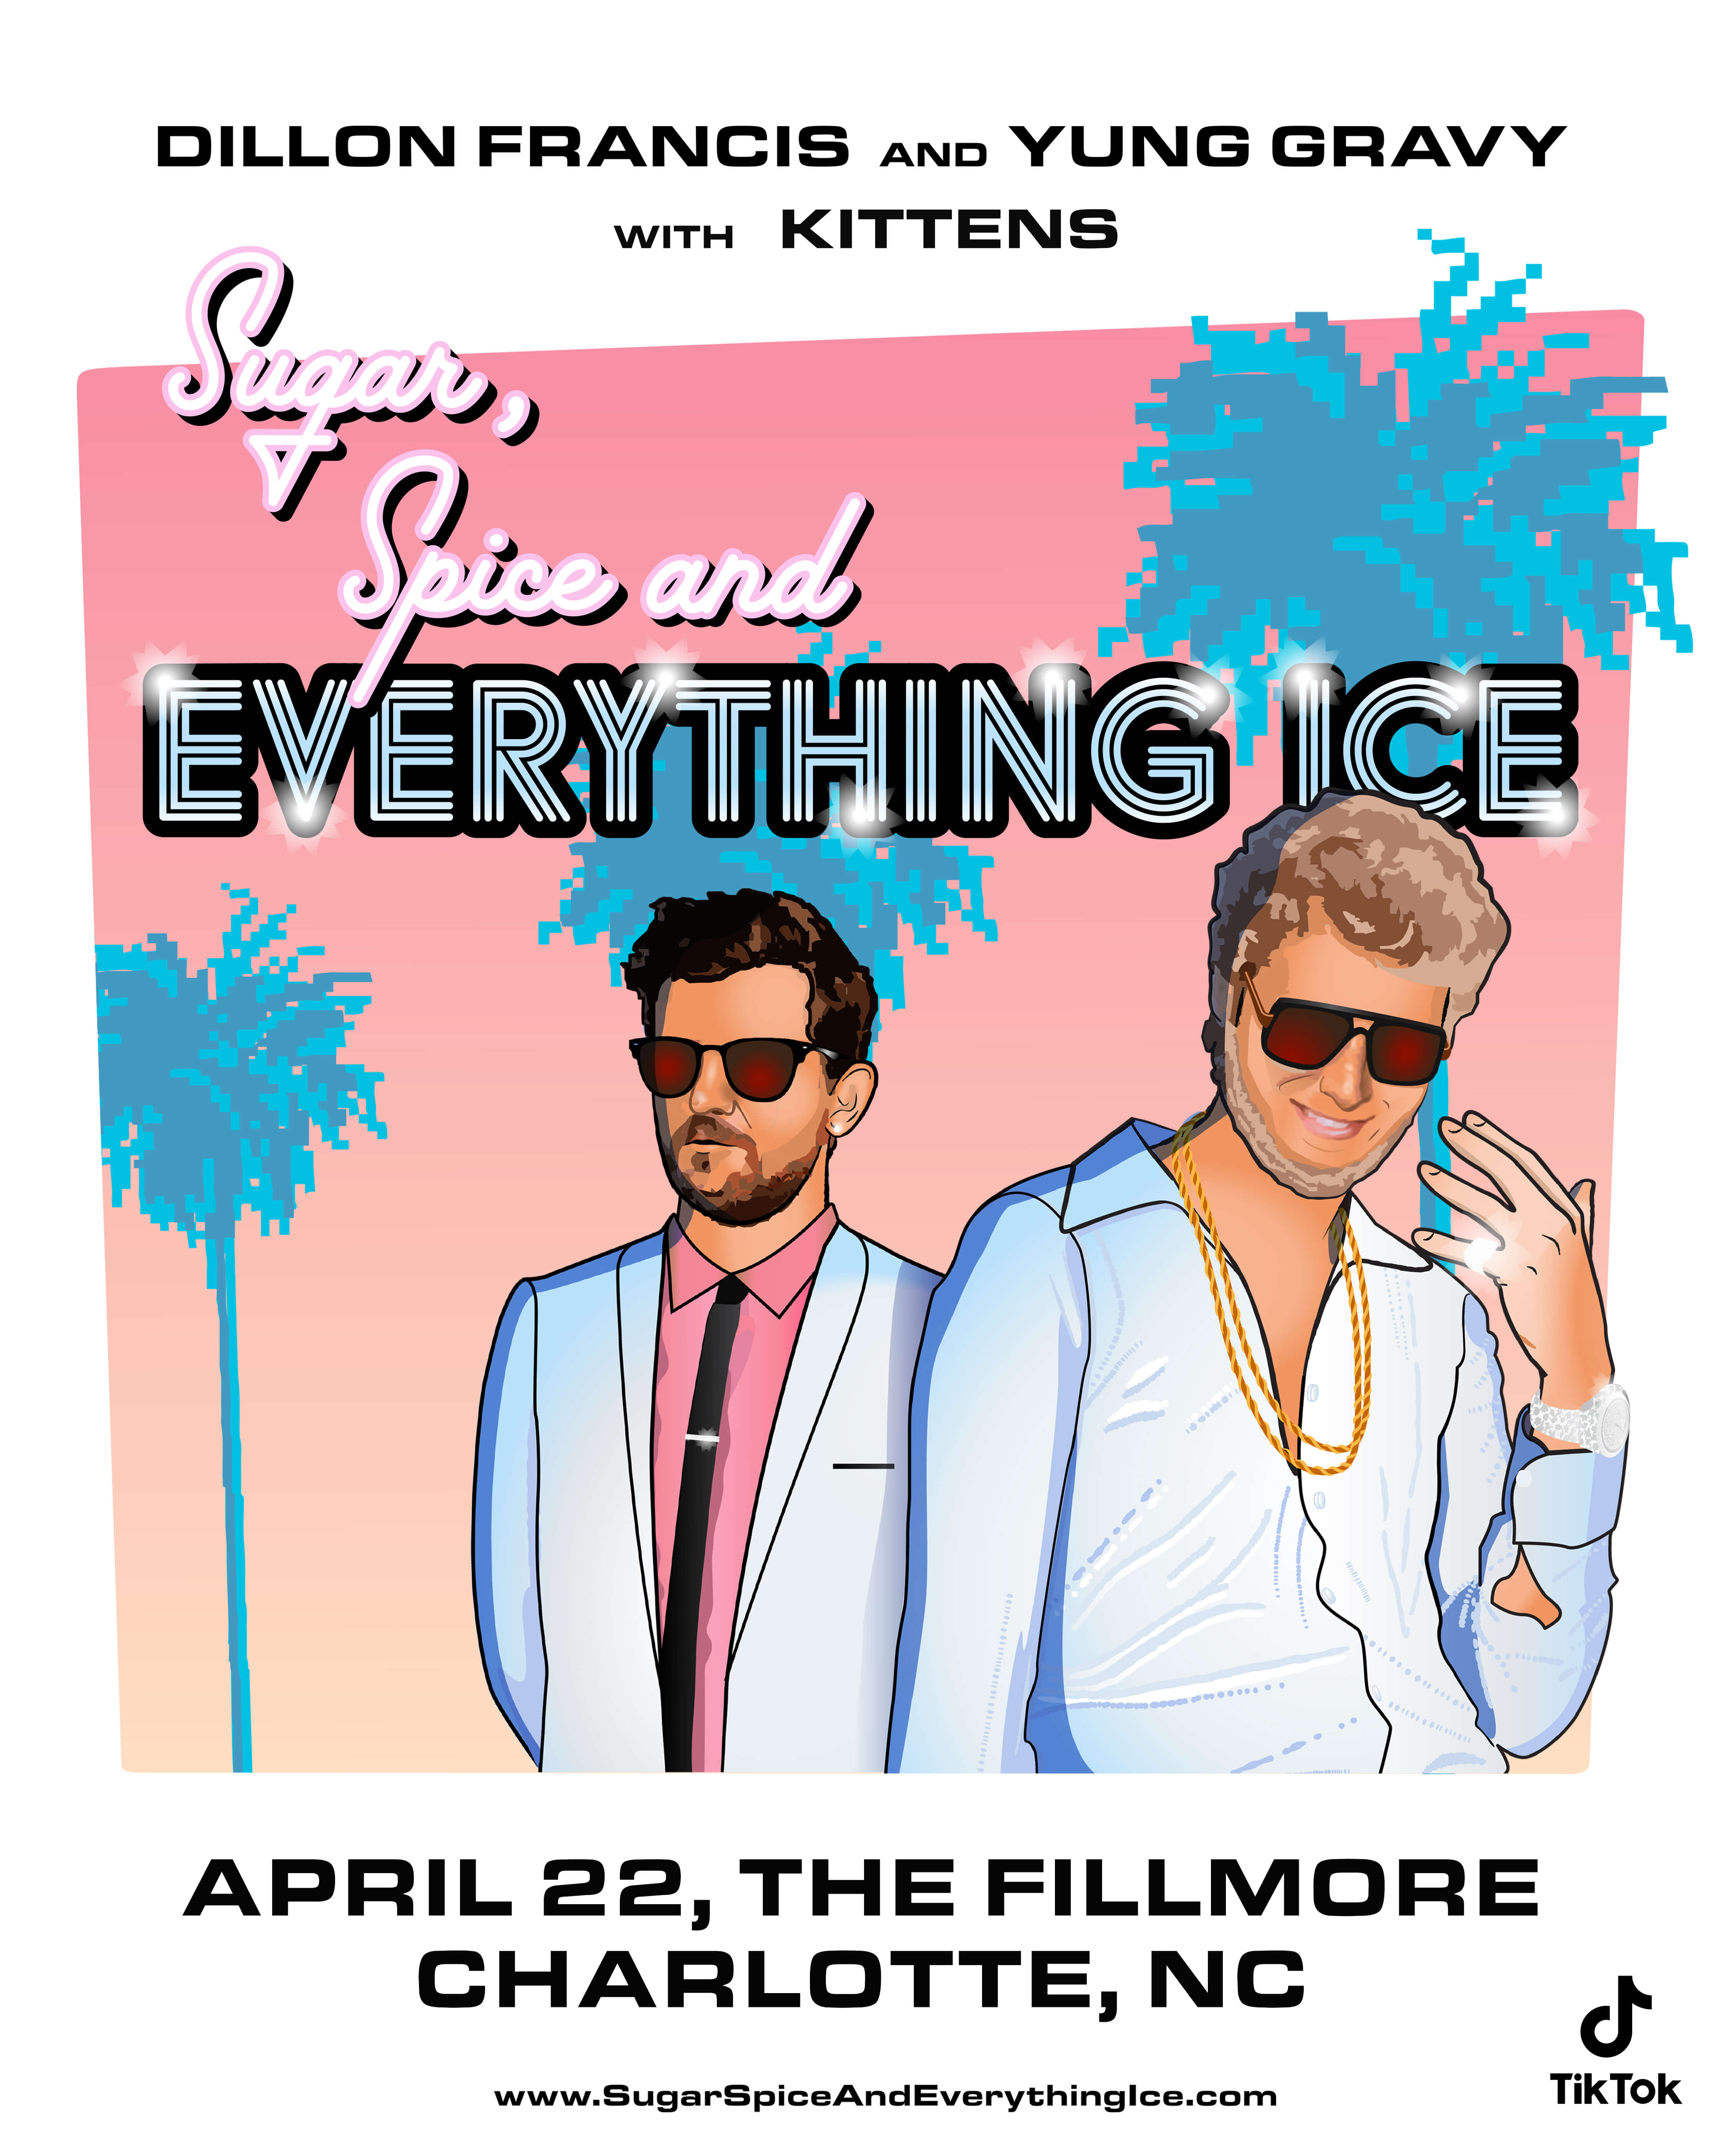 Dillon Francis, Yung Gravy, KITTENS in Charlotte